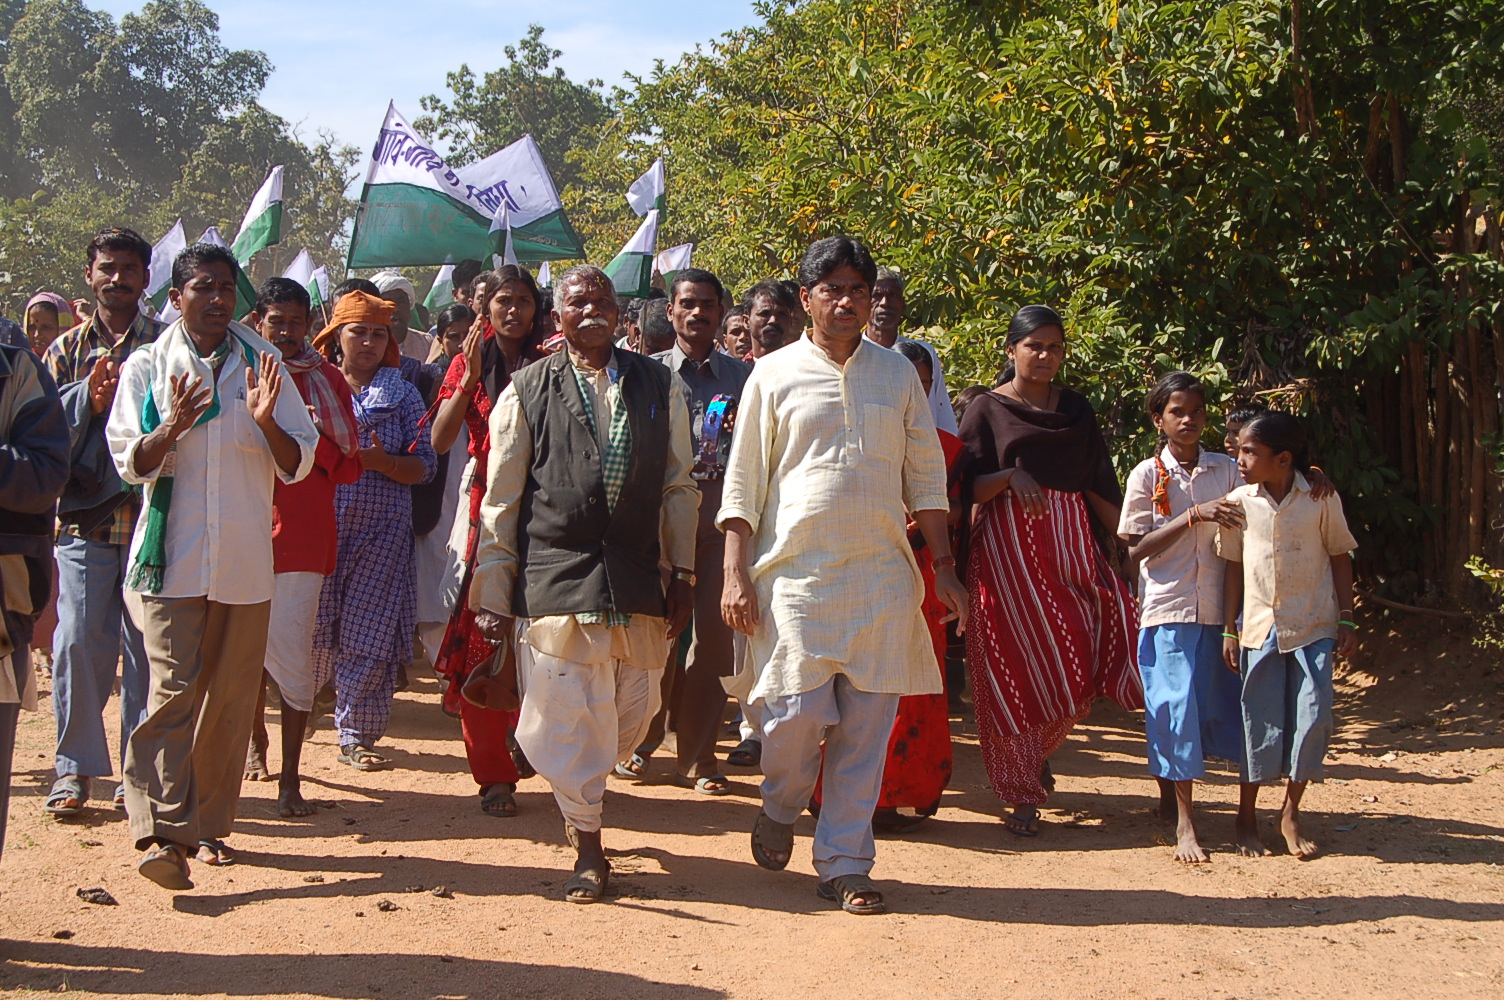 Ekta_Parishad_Walk,_Chhattisgarh,_Nov_2005